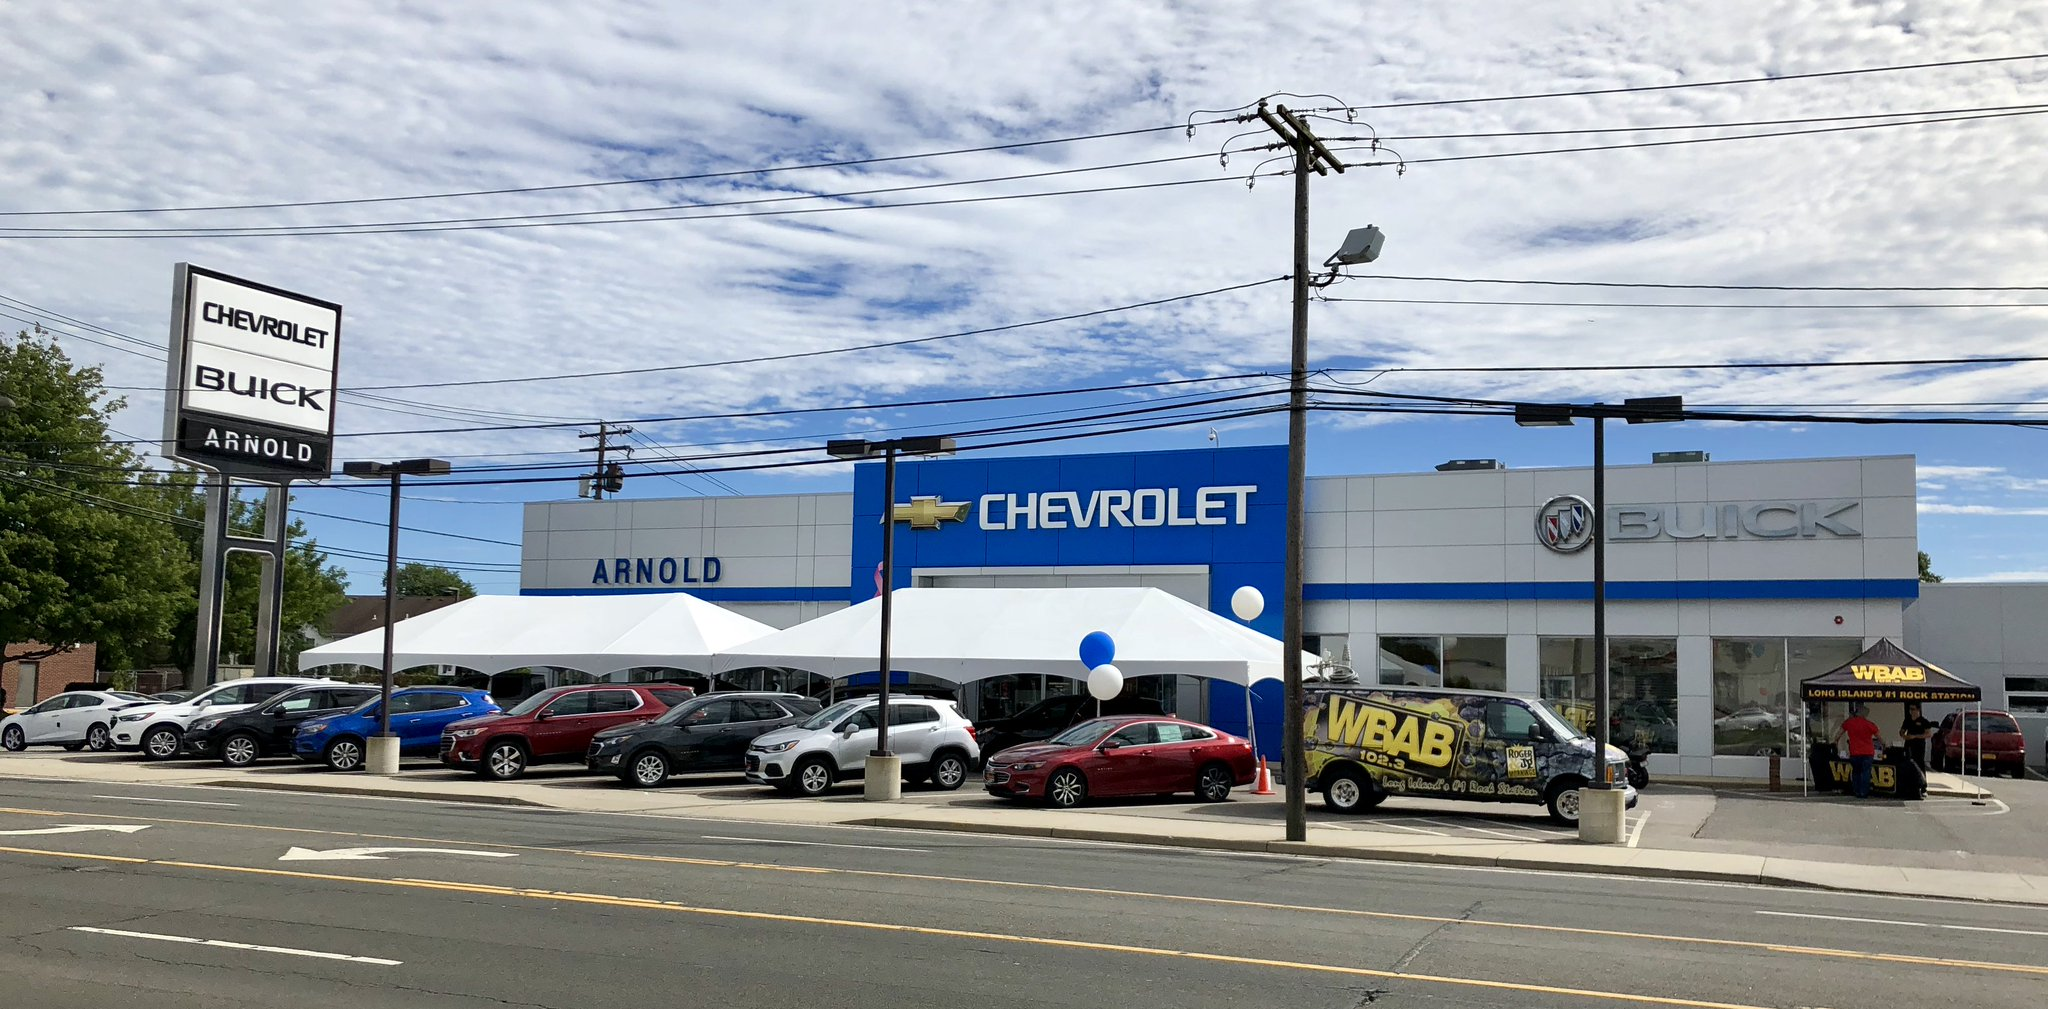 Arnold Chevrolet Buick On Twitter Tents Huge Sales Wbab Chevy